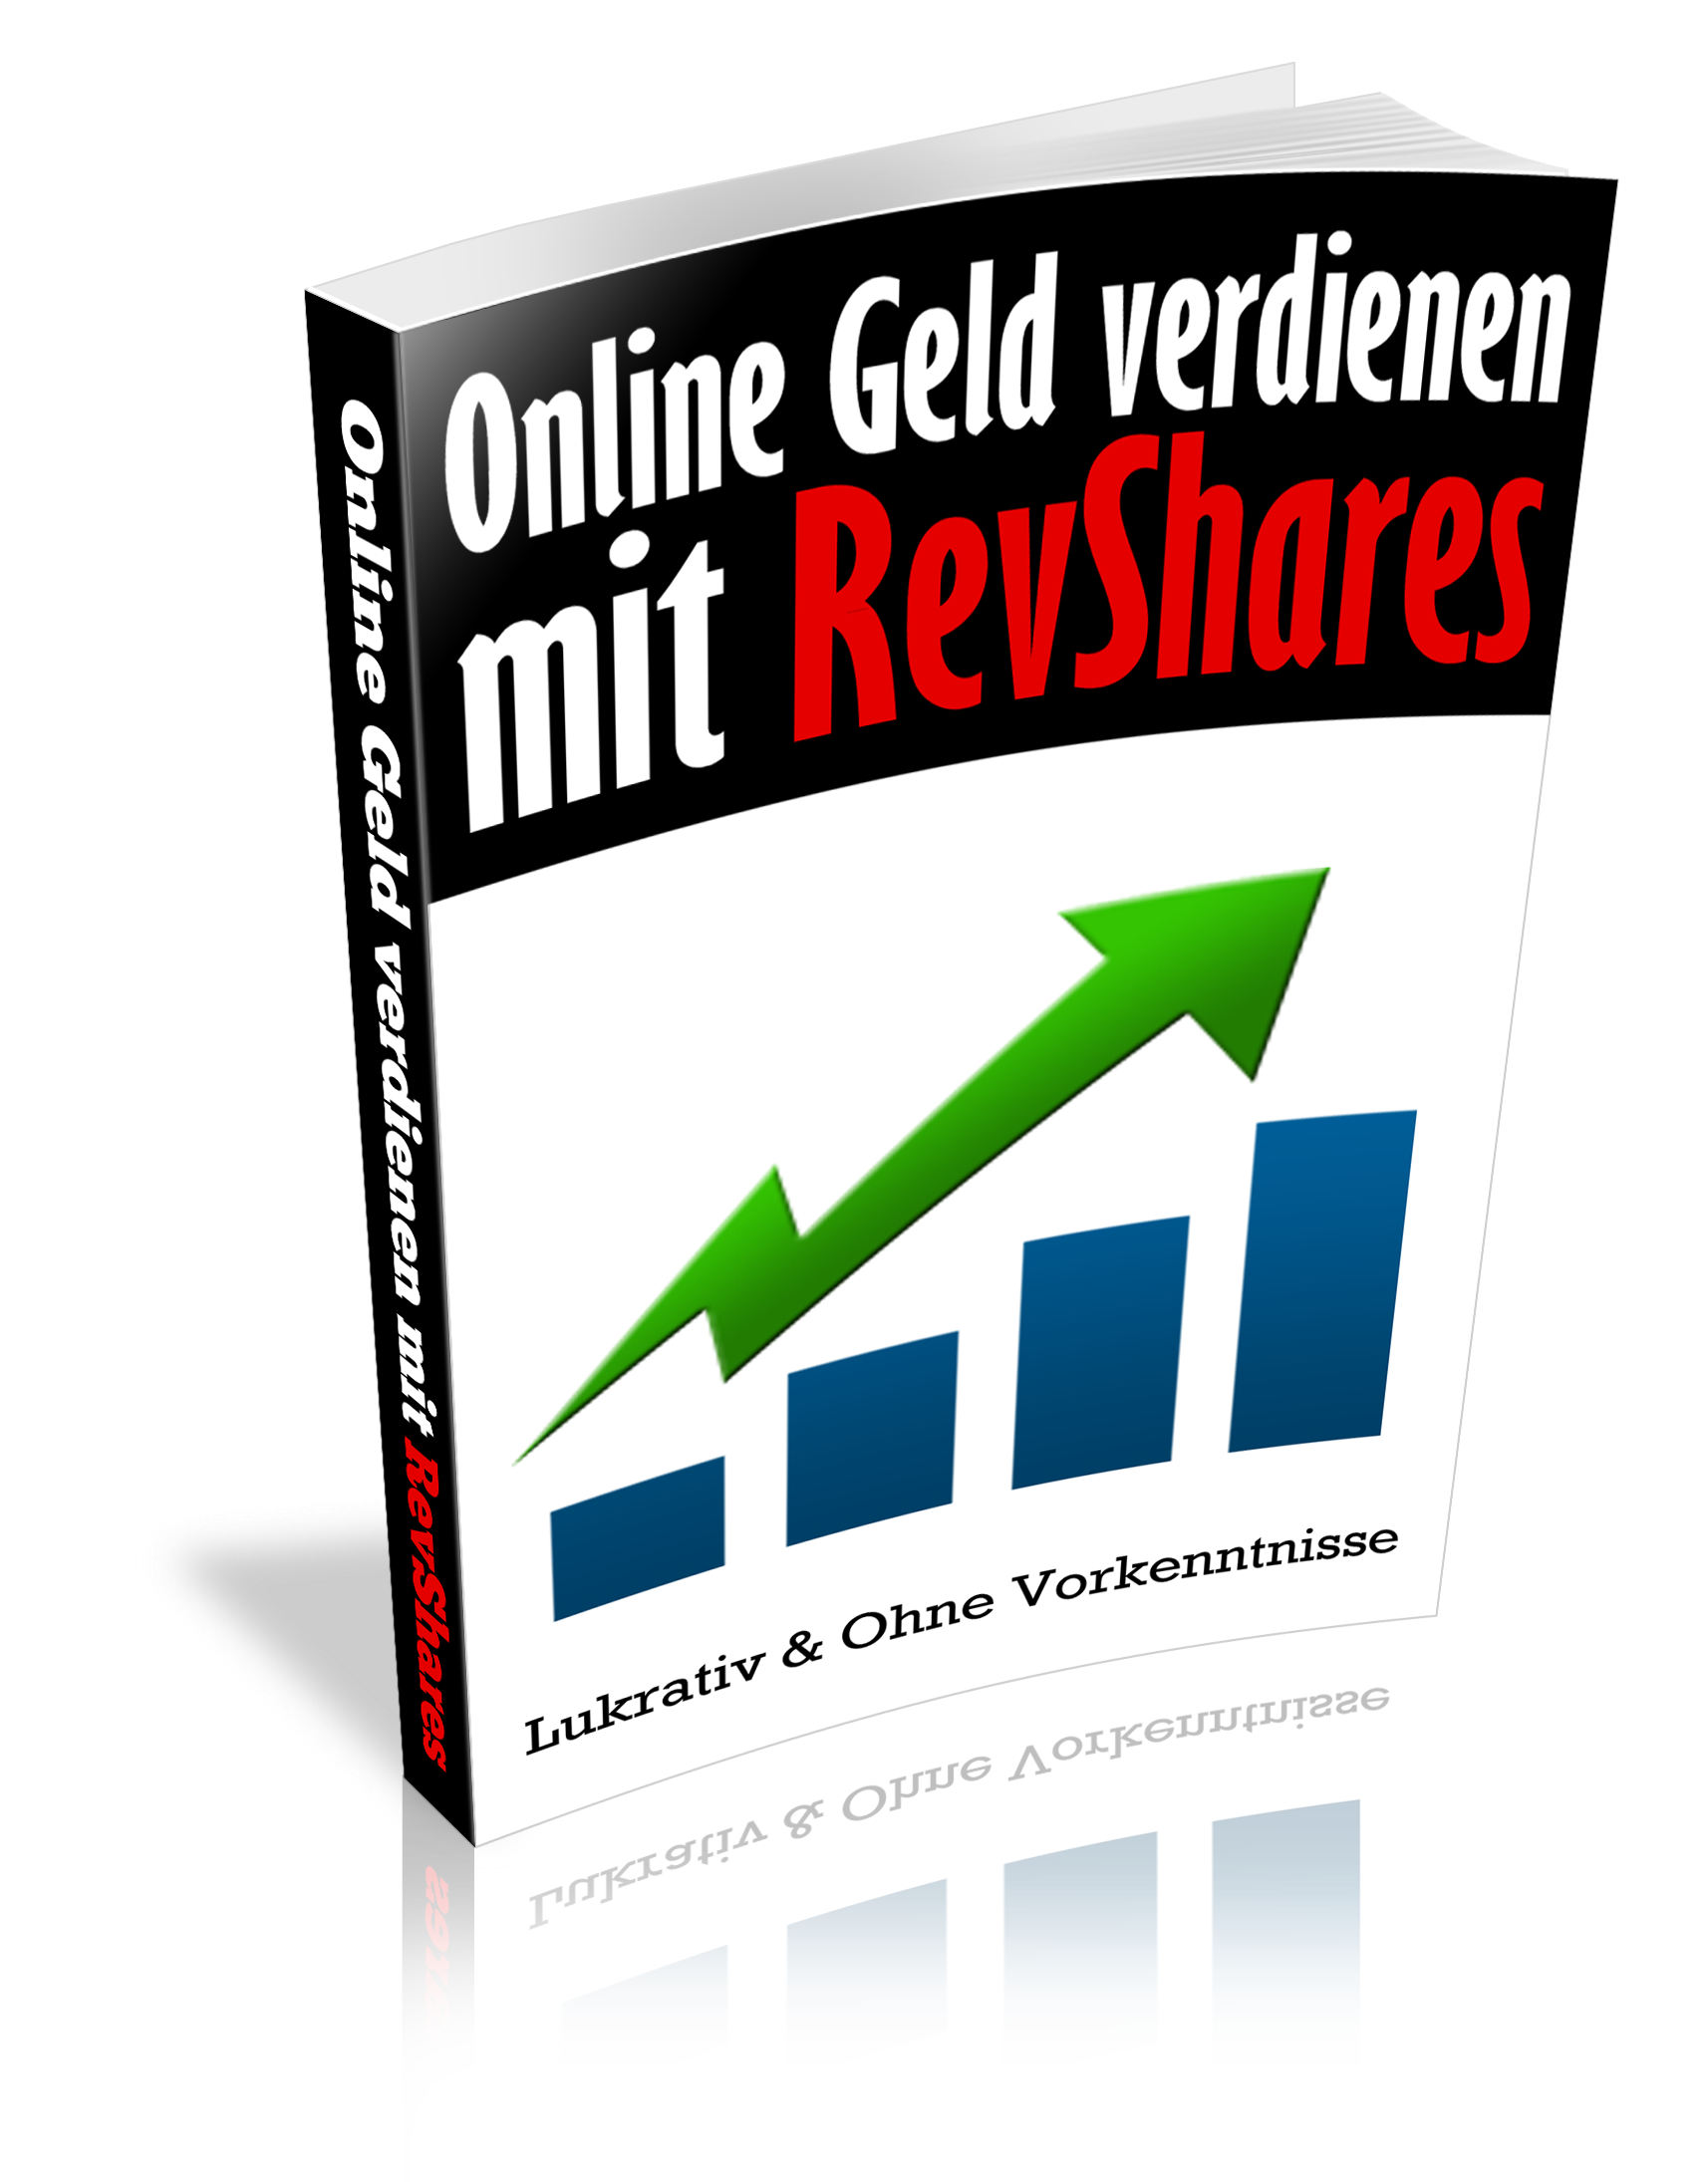 online geld verdienen mit revshares. Black Bedroom Furniture Sets. Home Design Ideas